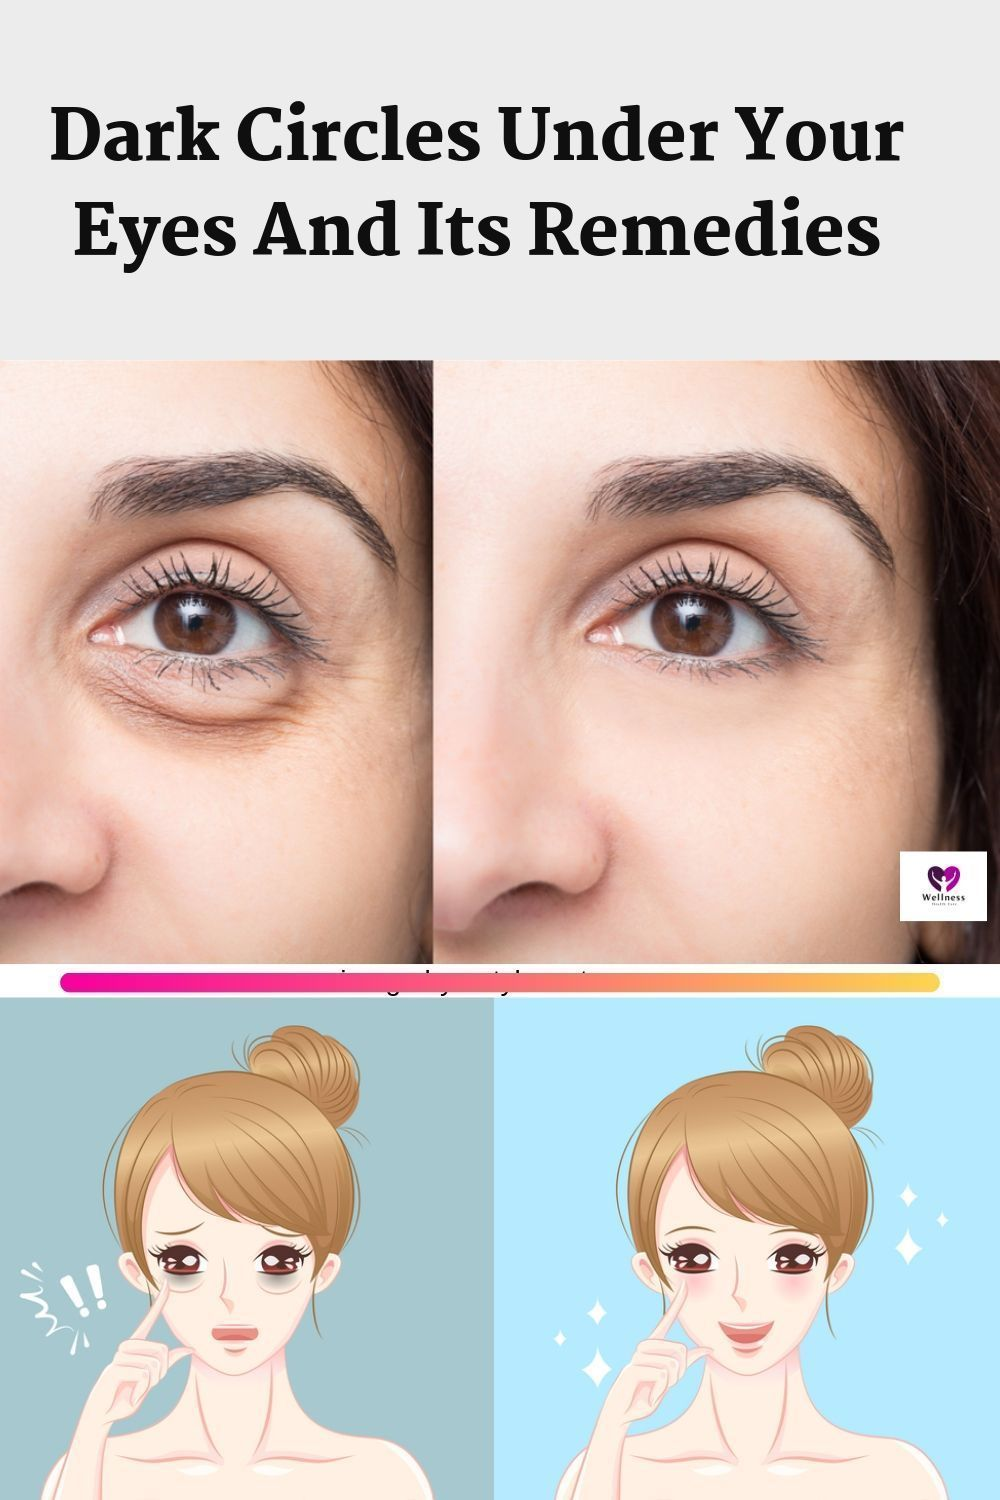 Dark Circles Under Your Eyes And Its Remedies Are you facing dark circles under your eyes? Is it getting difficult for you to look your eyes in mirror daily? Don't be worried today I am going to tell you the remedies which you can prepare easily at your home with your kitchen products. #DarkCirclesCream #darkcircle